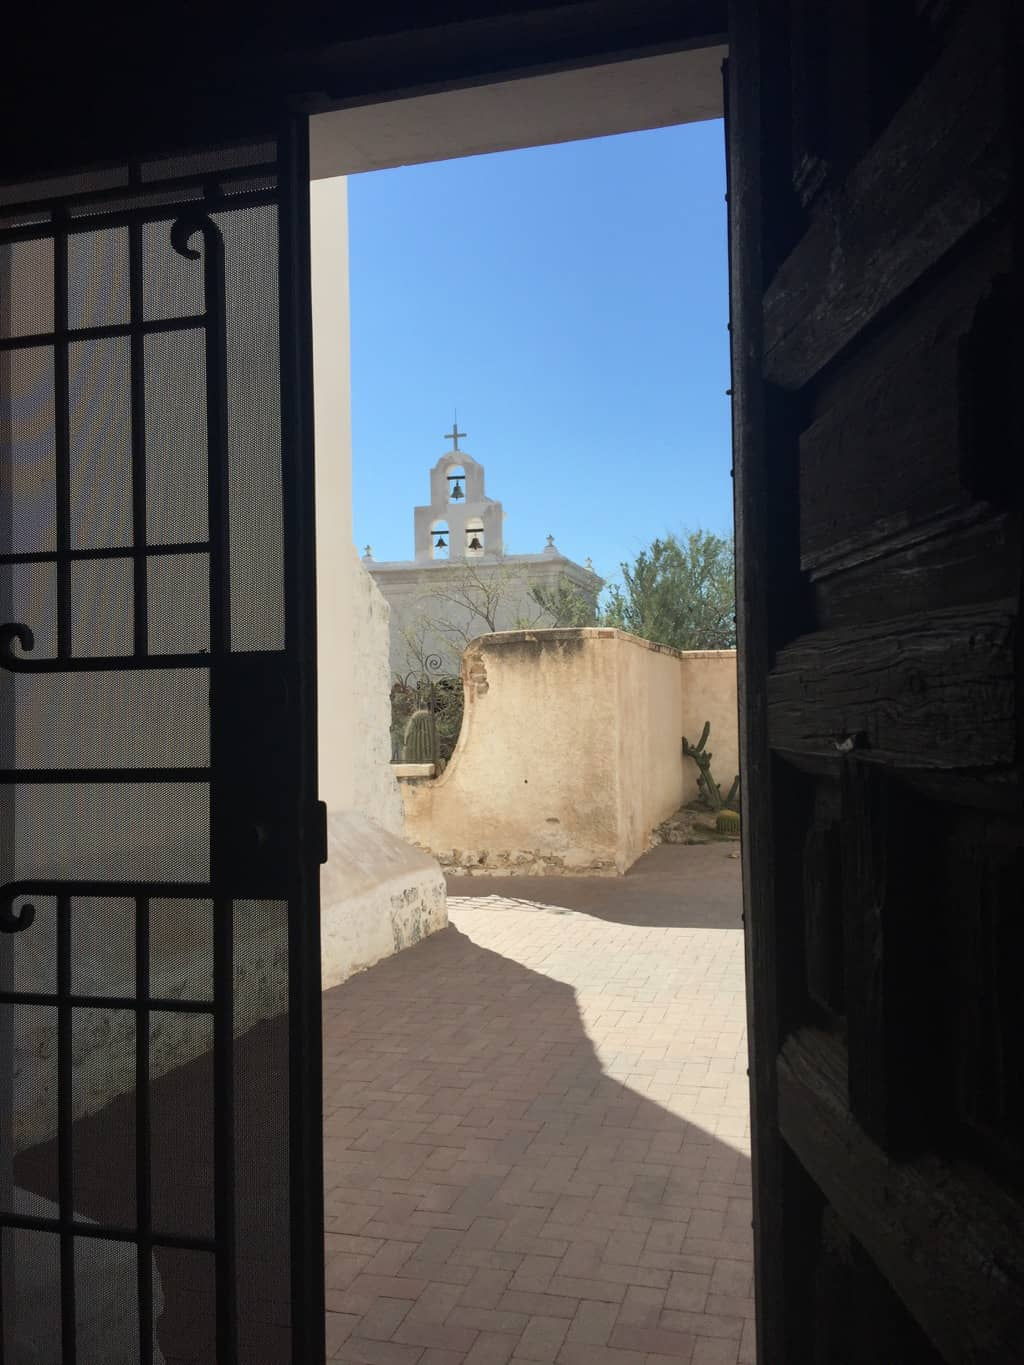 Things to do in Tucson, Things to do Tucson, cool things to do in Tucson, top things to do in Tucson, cool things to do in Tucson, free things to do in Tucson, Things to do in Tucson with kids, Tucson AZ things to do,